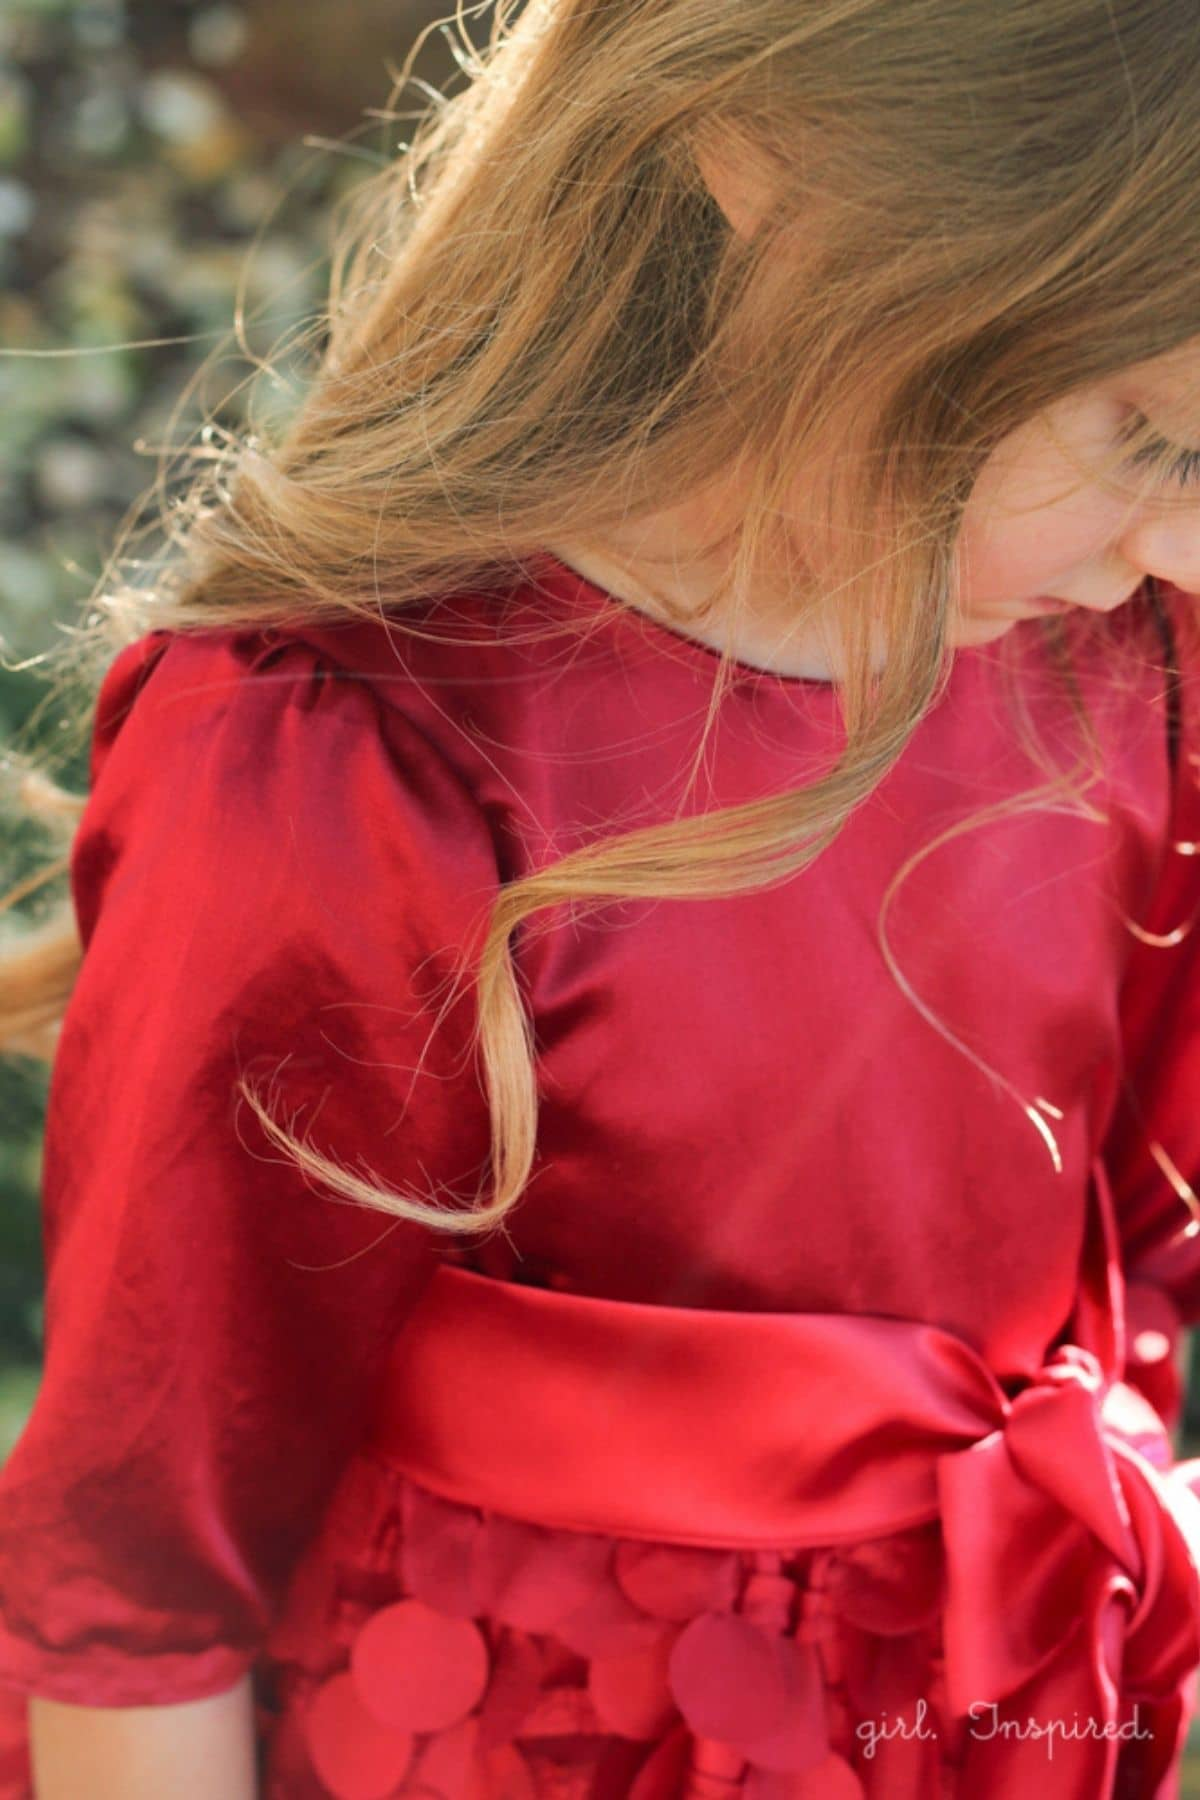 girl in red satin dress with puffed long sleeve. Image from her waist to mid face. Long brown hair.